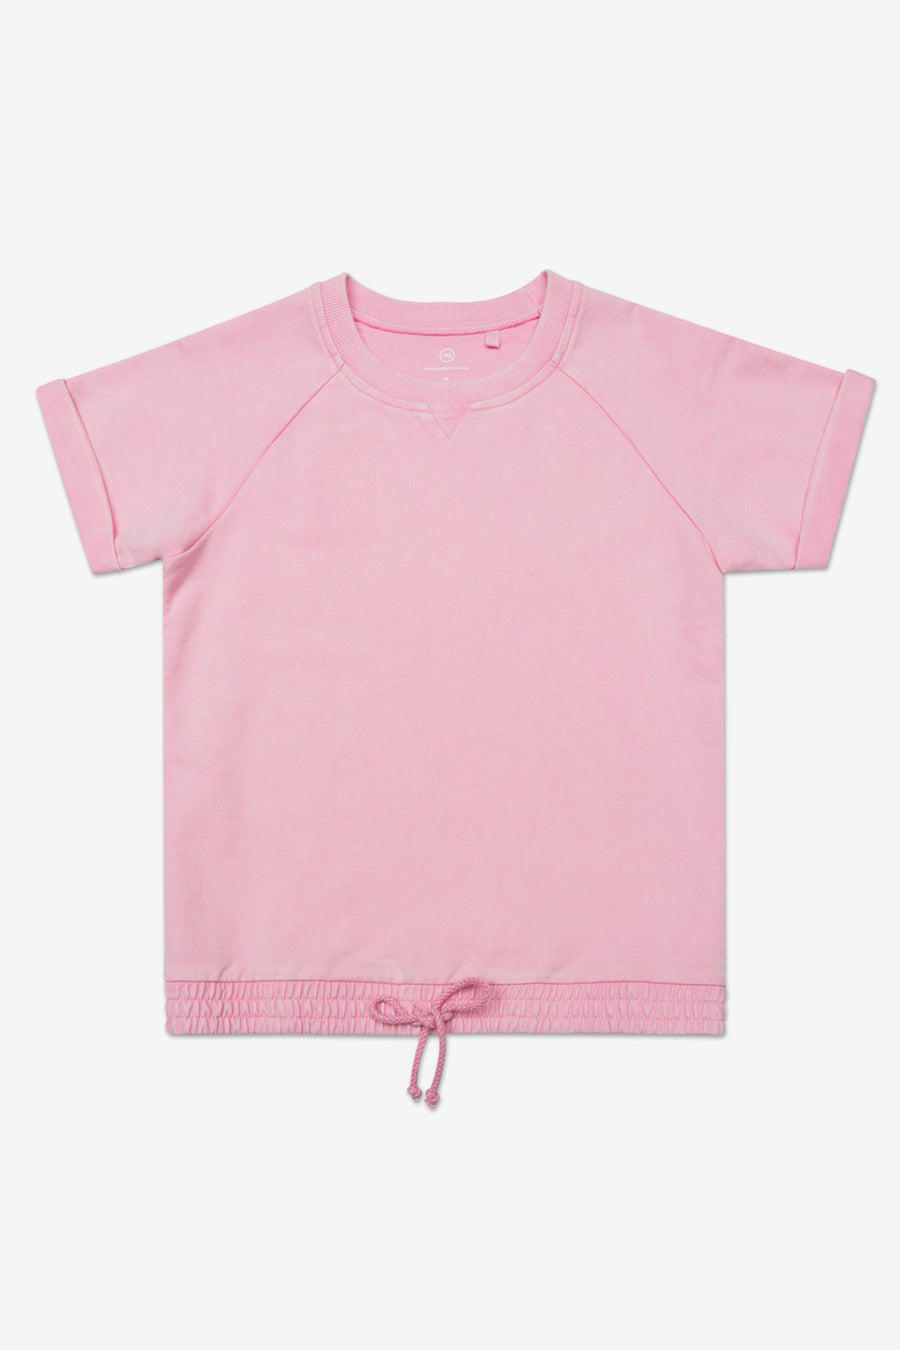 AG Jeans Kids Cherie Girls Top (Size 8 left)